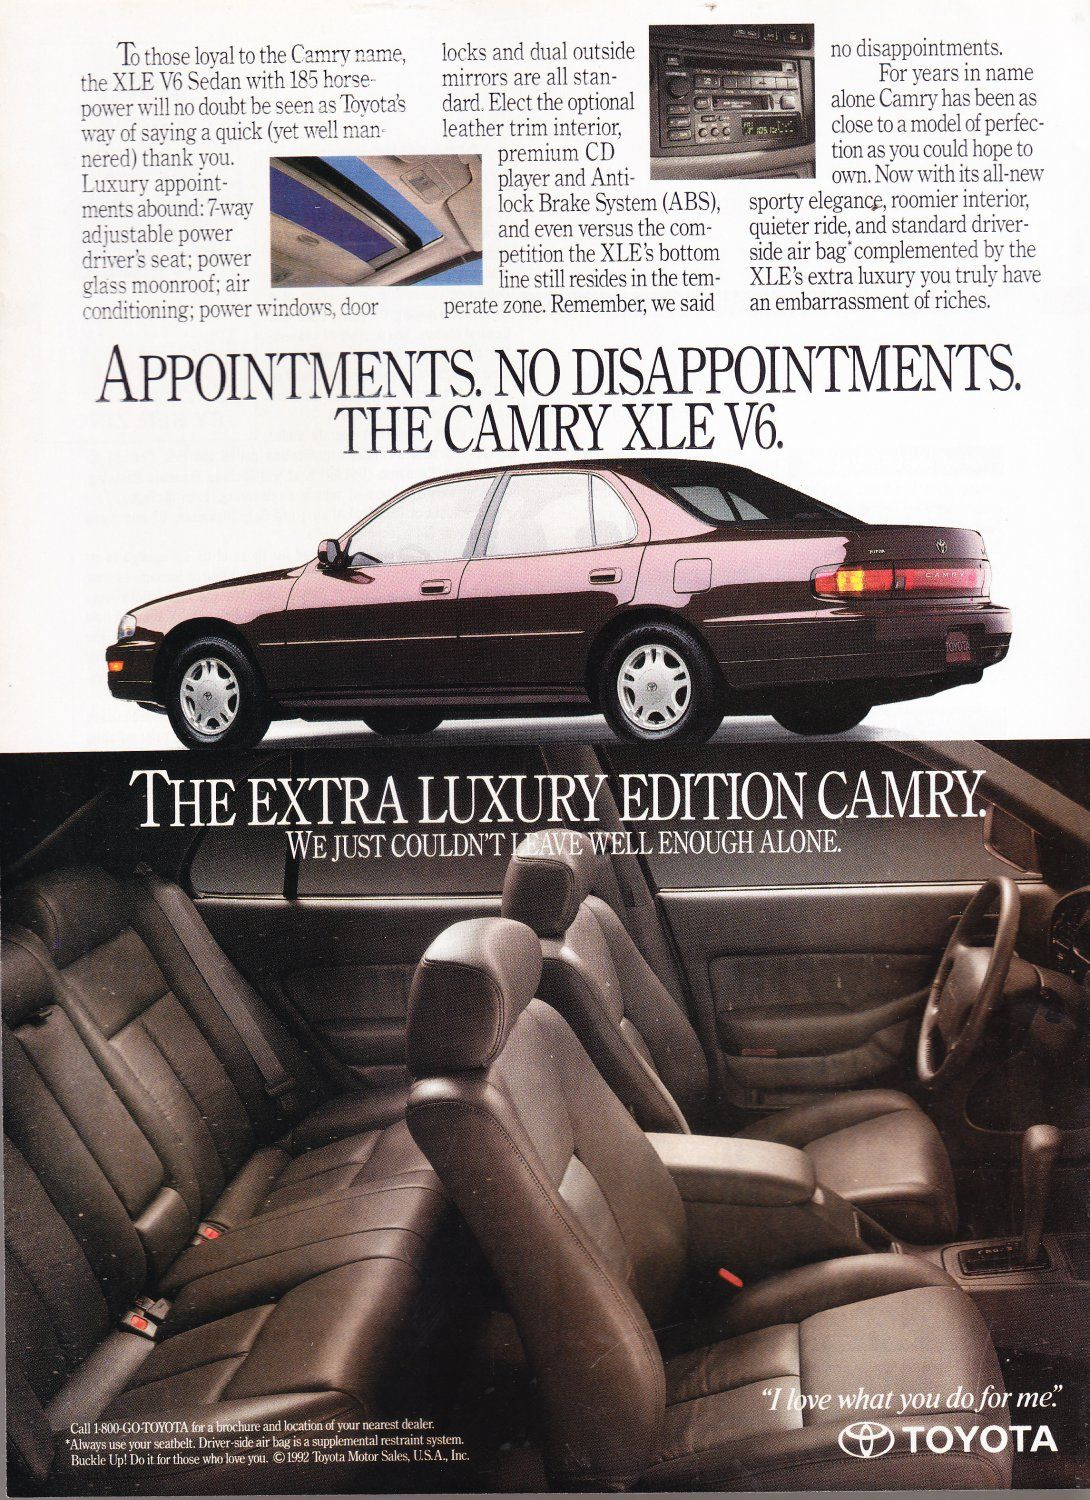 Toyota Camry Xle Ad Vintage Magazine Advertisement Camry Toyota Camry Classic Cars